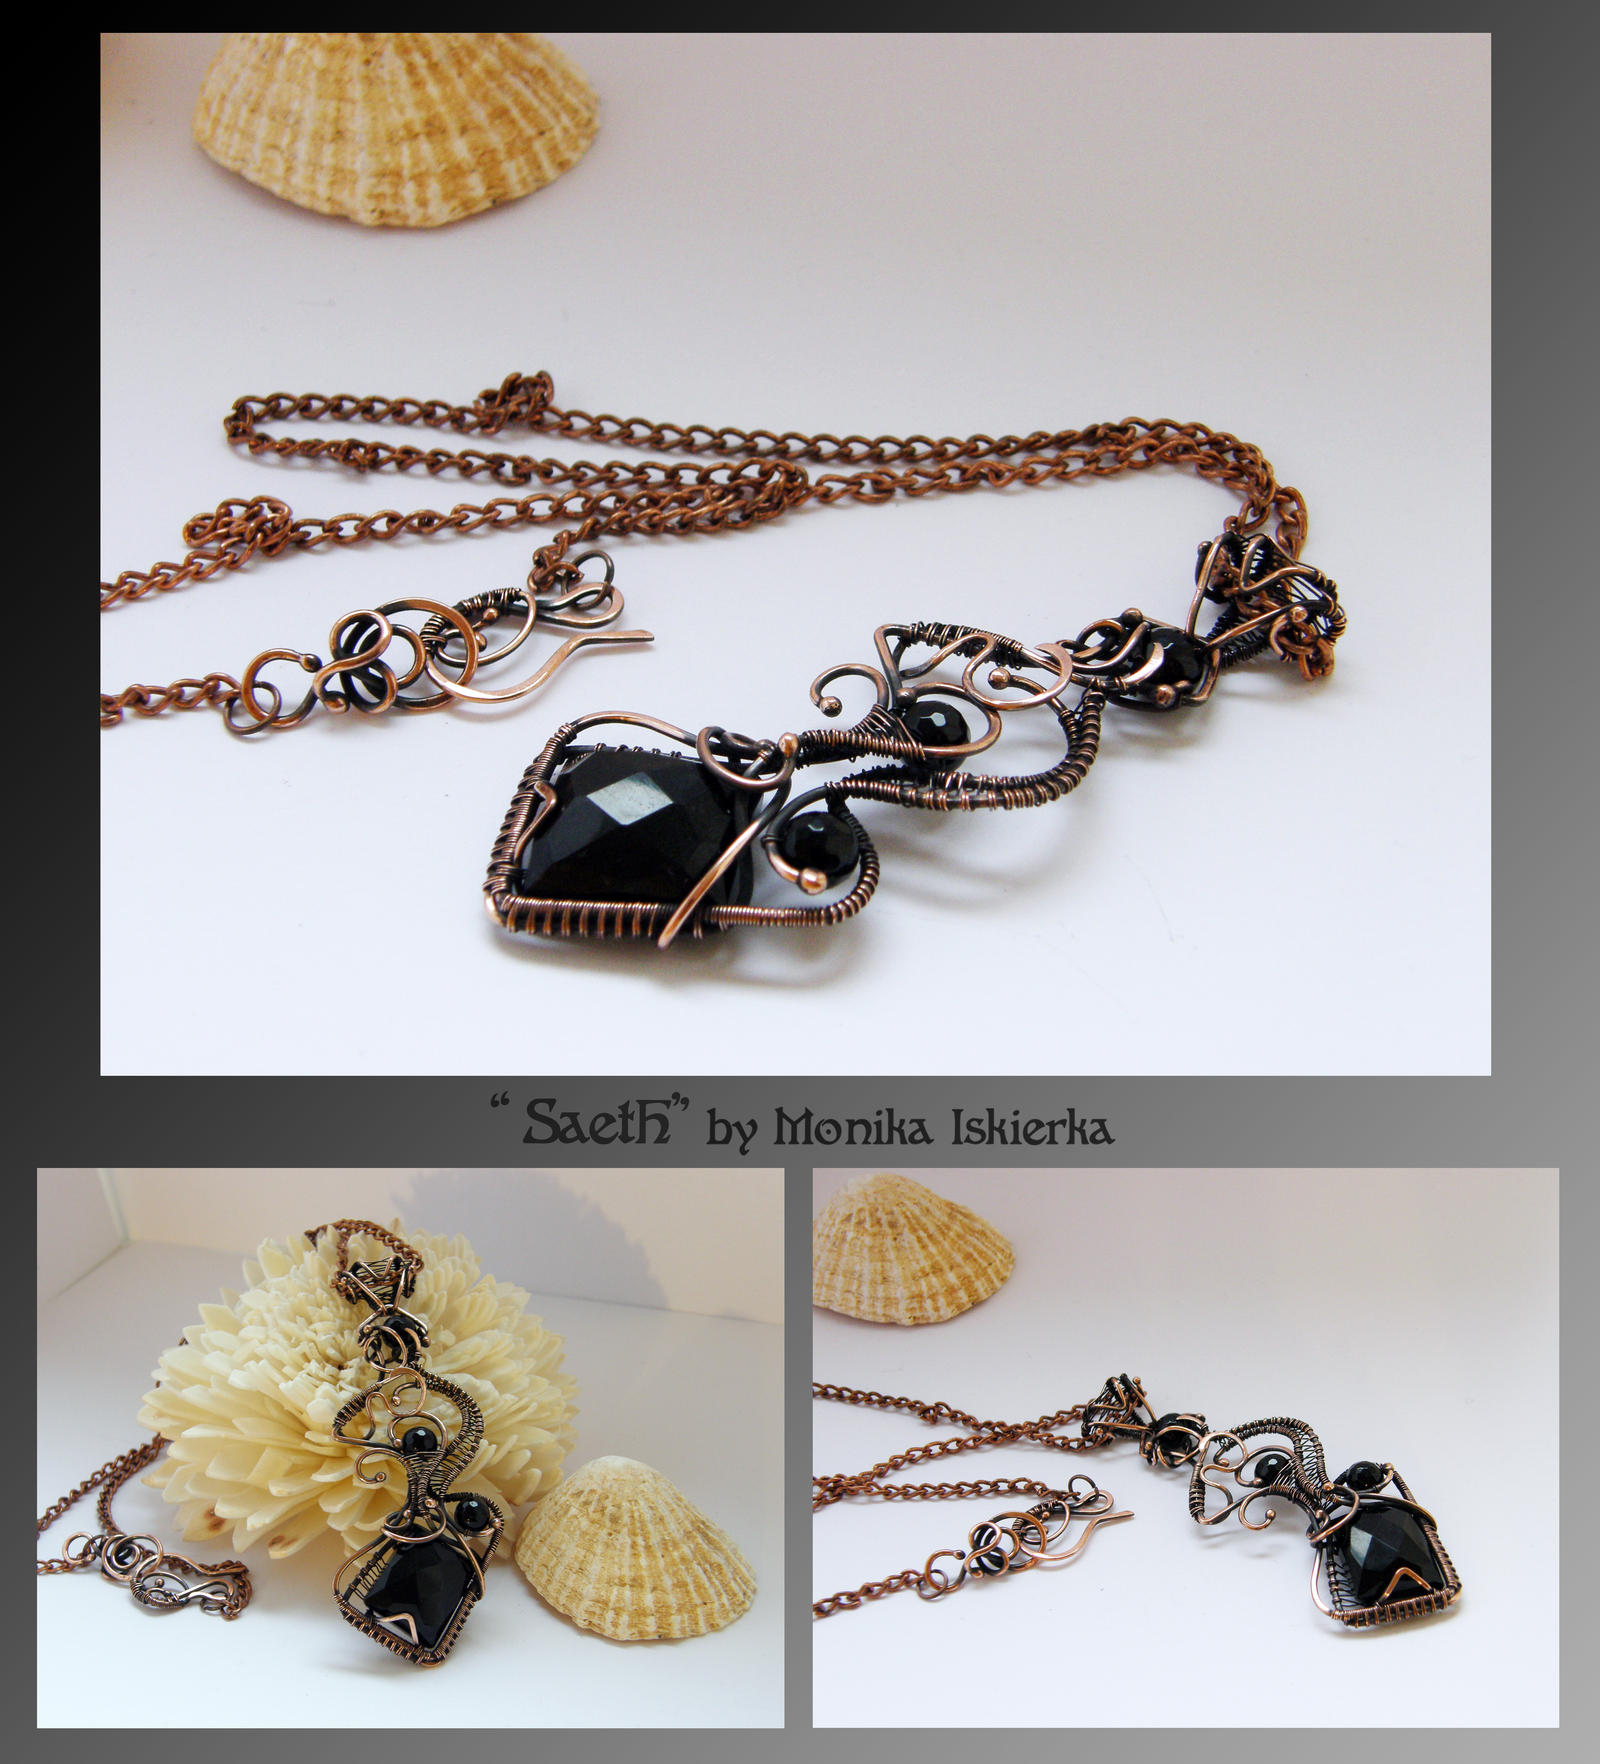 Saeth- wire wrapped necklace